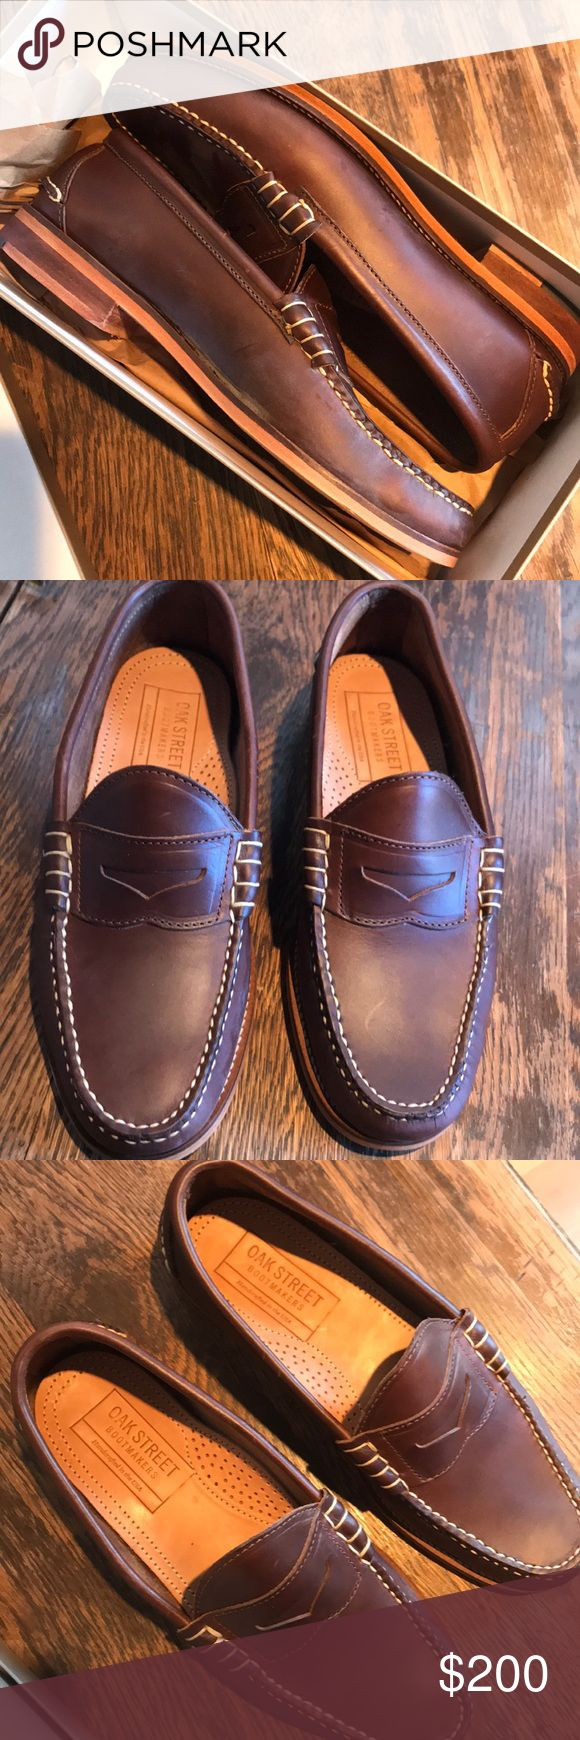 NIB Oak Street Men's Loafers Gorgeous hand stitched detail on these NIB men's leather loafers made by renowned shoemaker Oak Street Bootmakers.  These are a gorgeous addition to any mans wardrobe . Oak Street Bootmakers Shoes Loafers & Slip-Ons